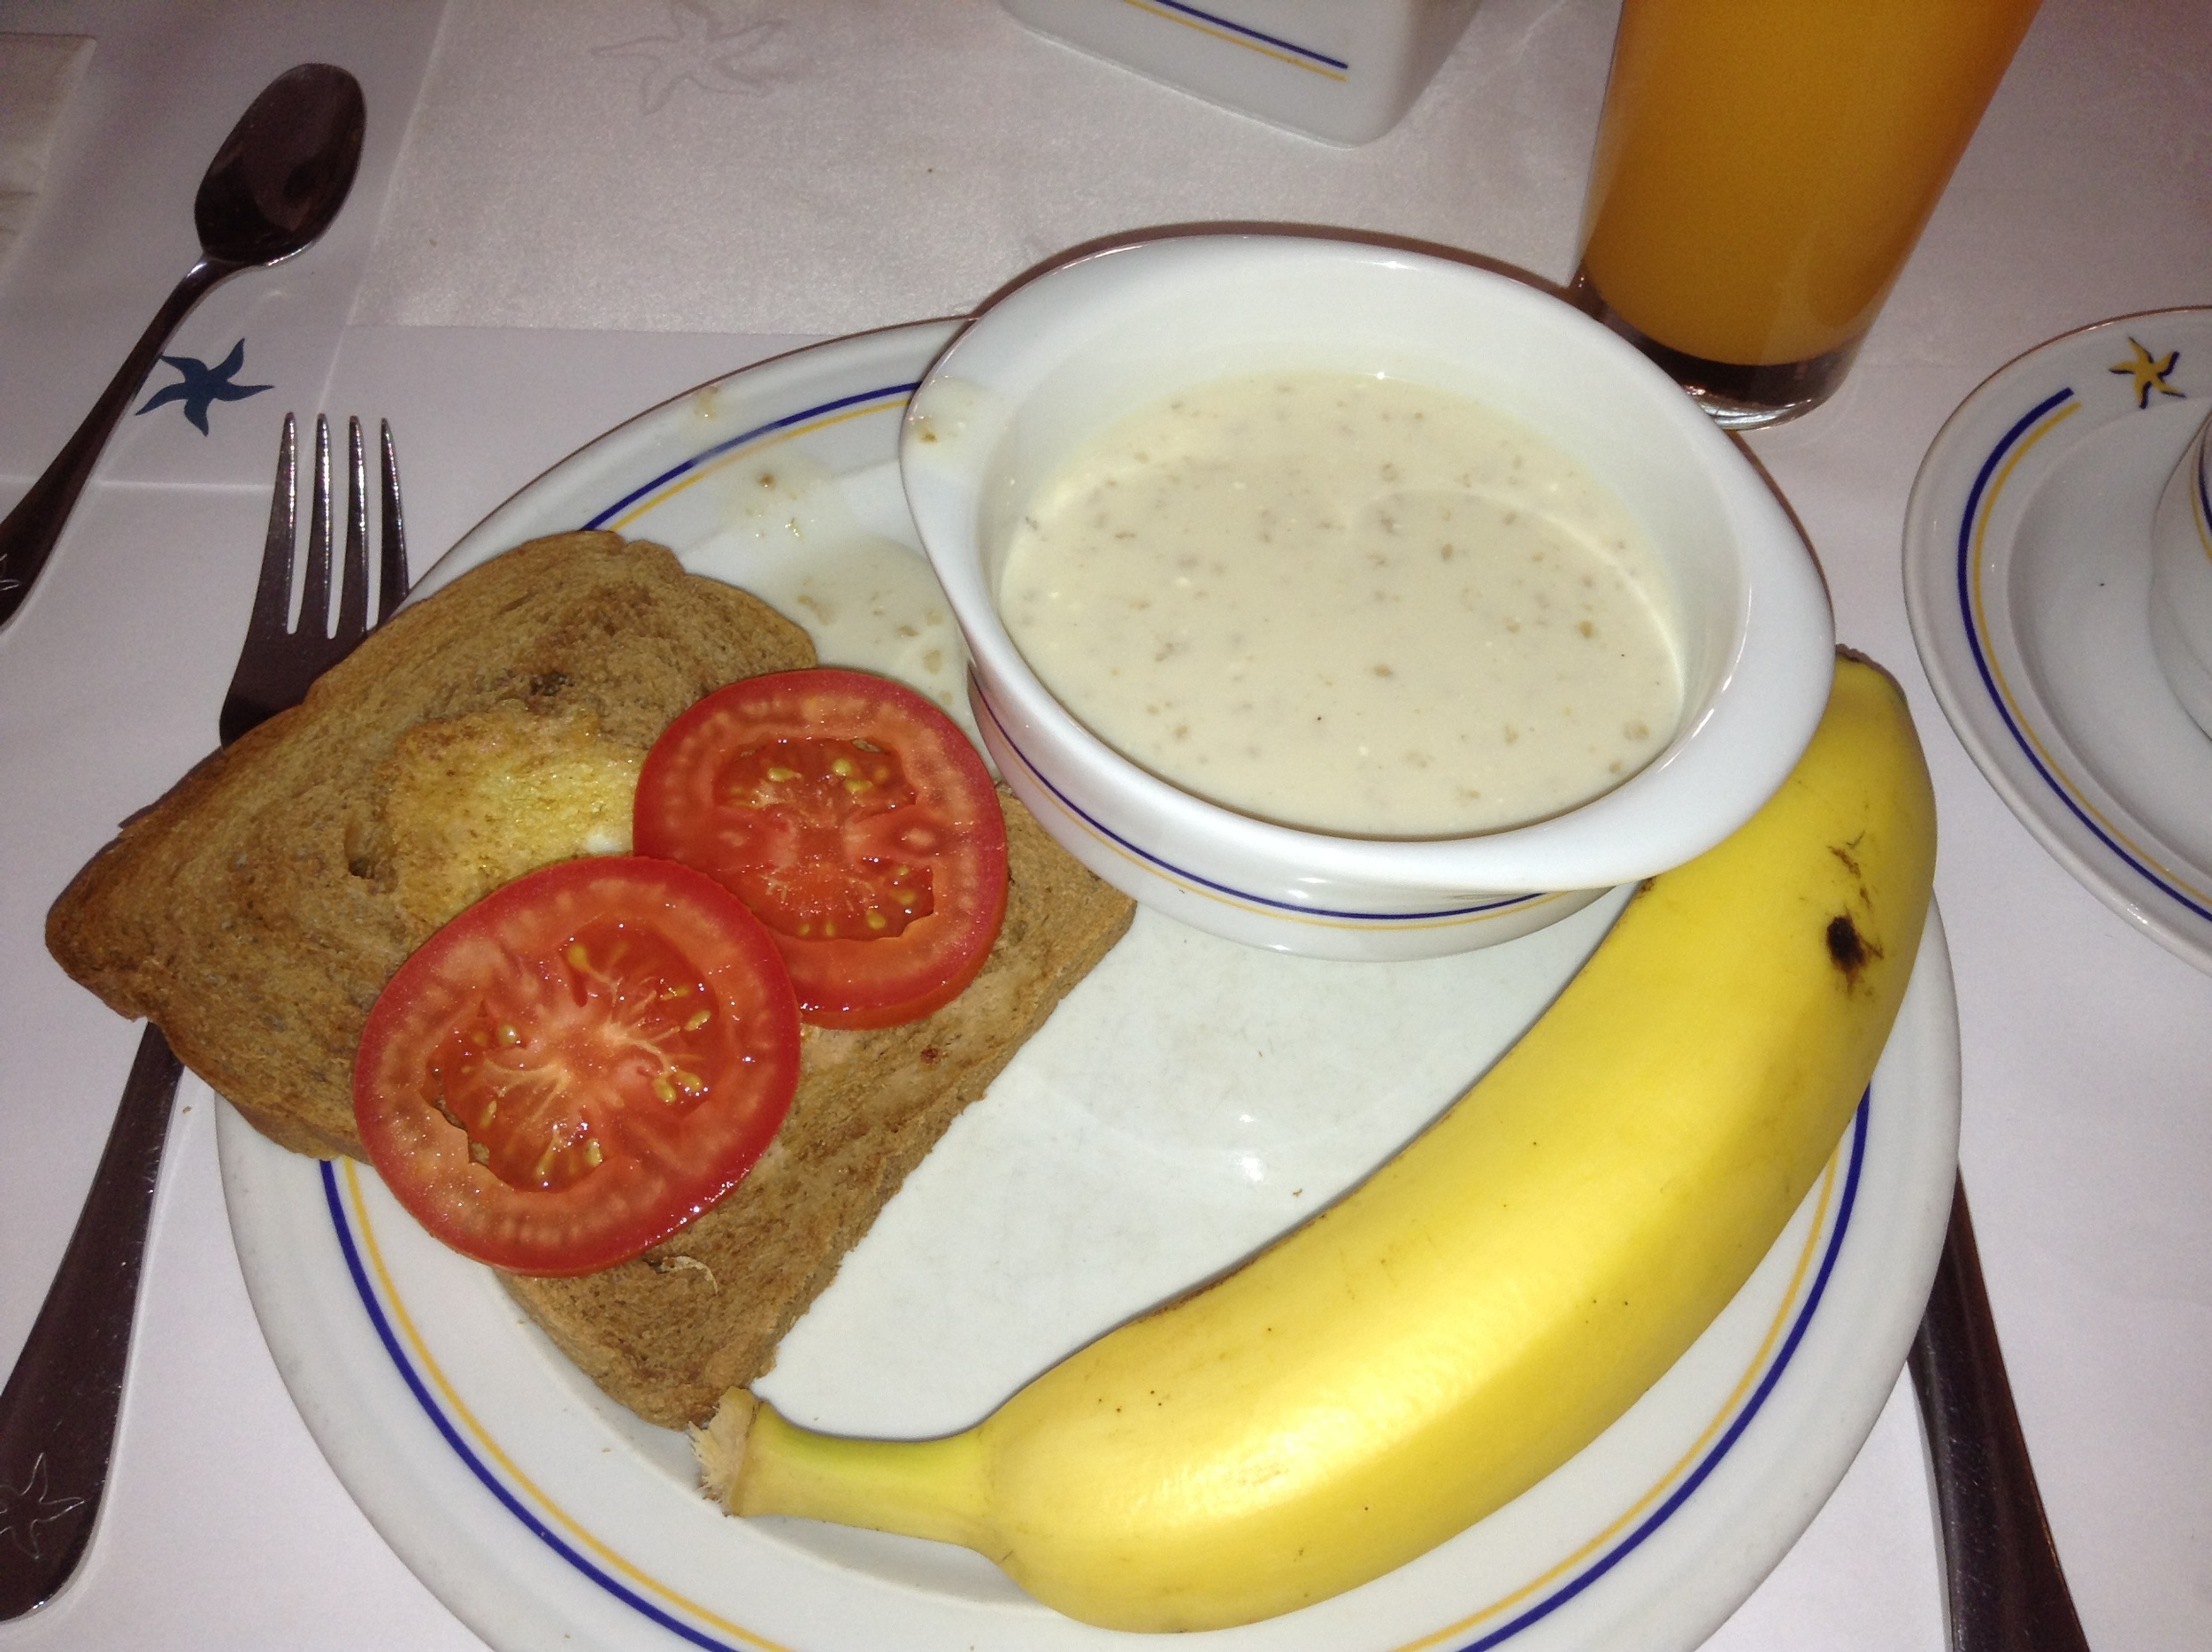 One egg on a slice of whole wheat toast with tomatoes, oatmeal and banana. They also offered a variety of green juice and carrot juice with most meals.